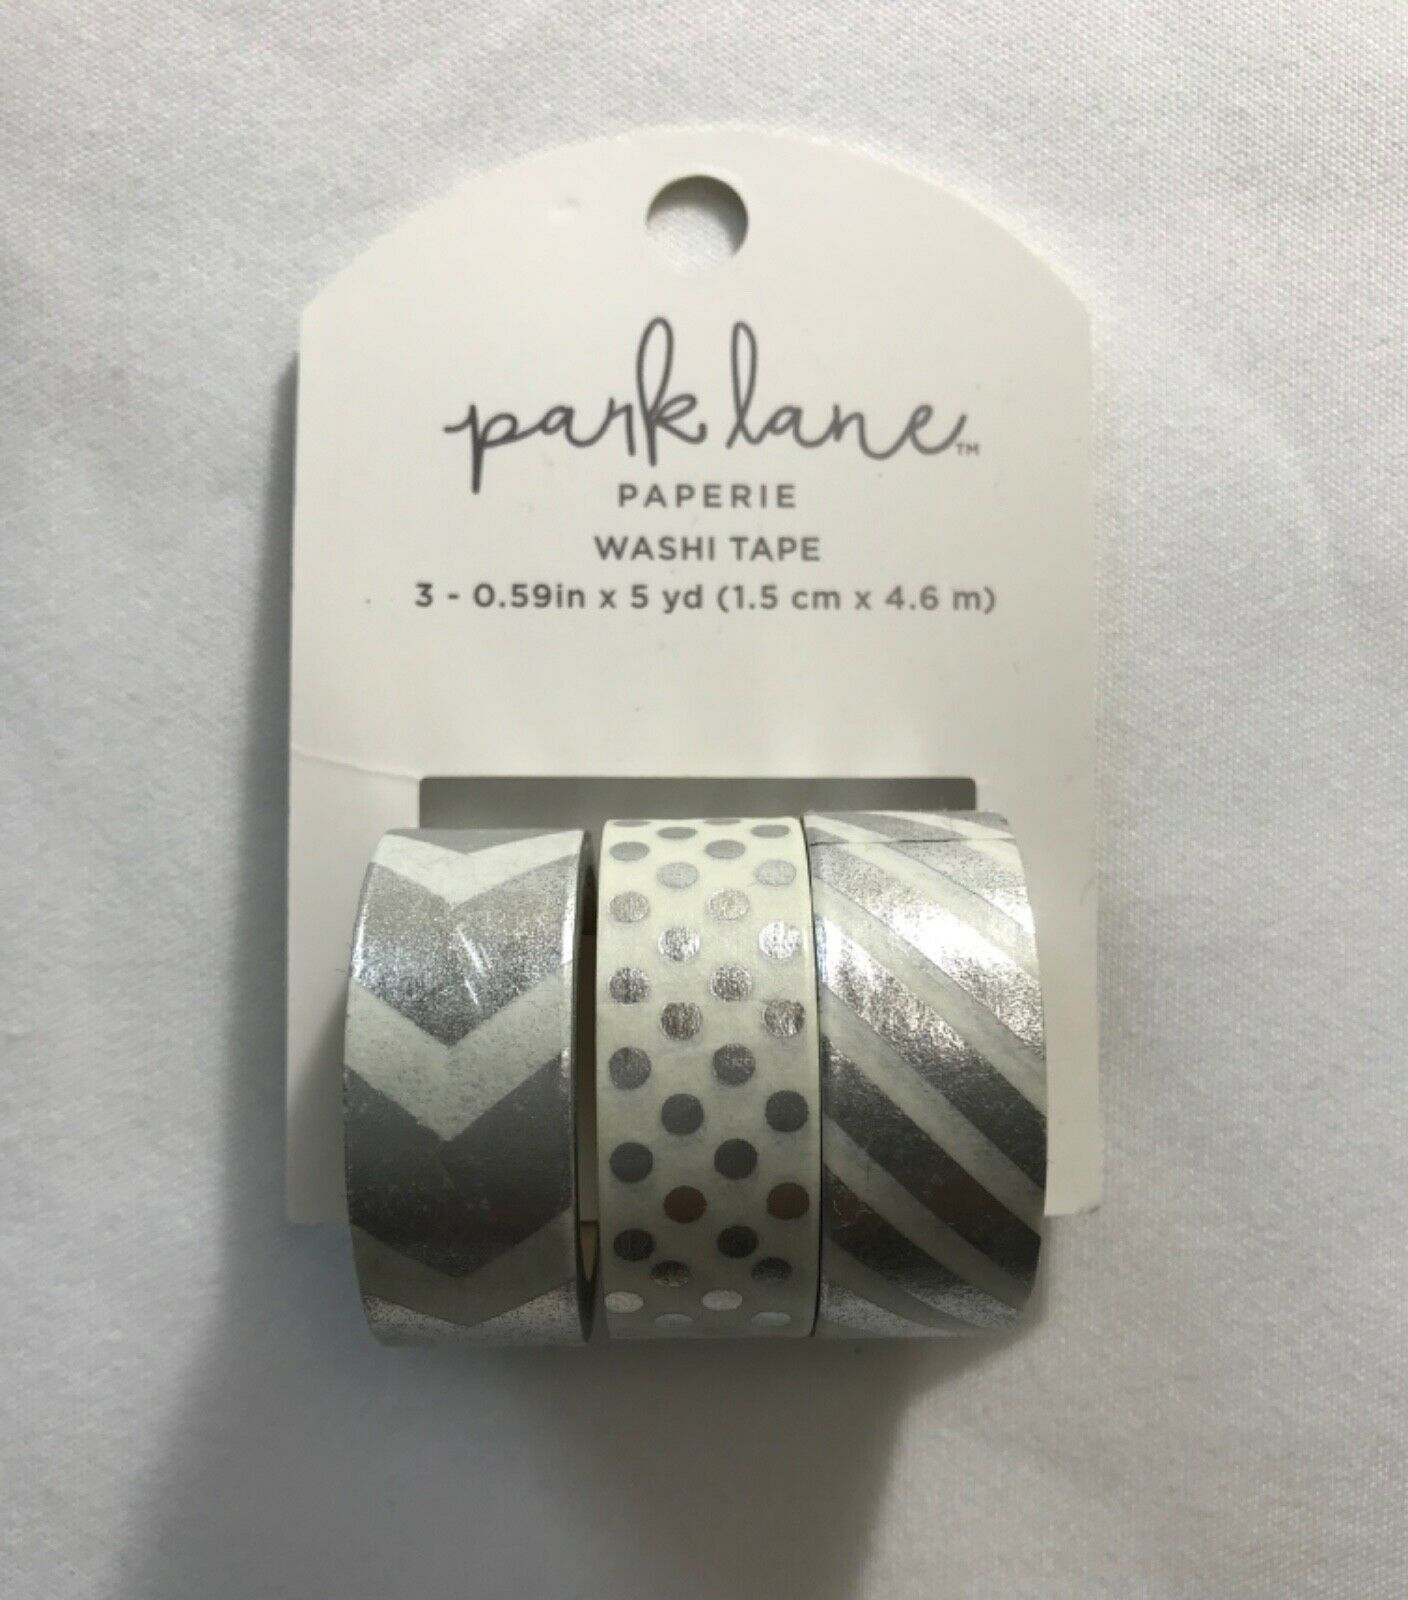 Primary image for Park Lane Paperie Washi Tape 3 Rolls (3 Silver Foil rolls w/different design)